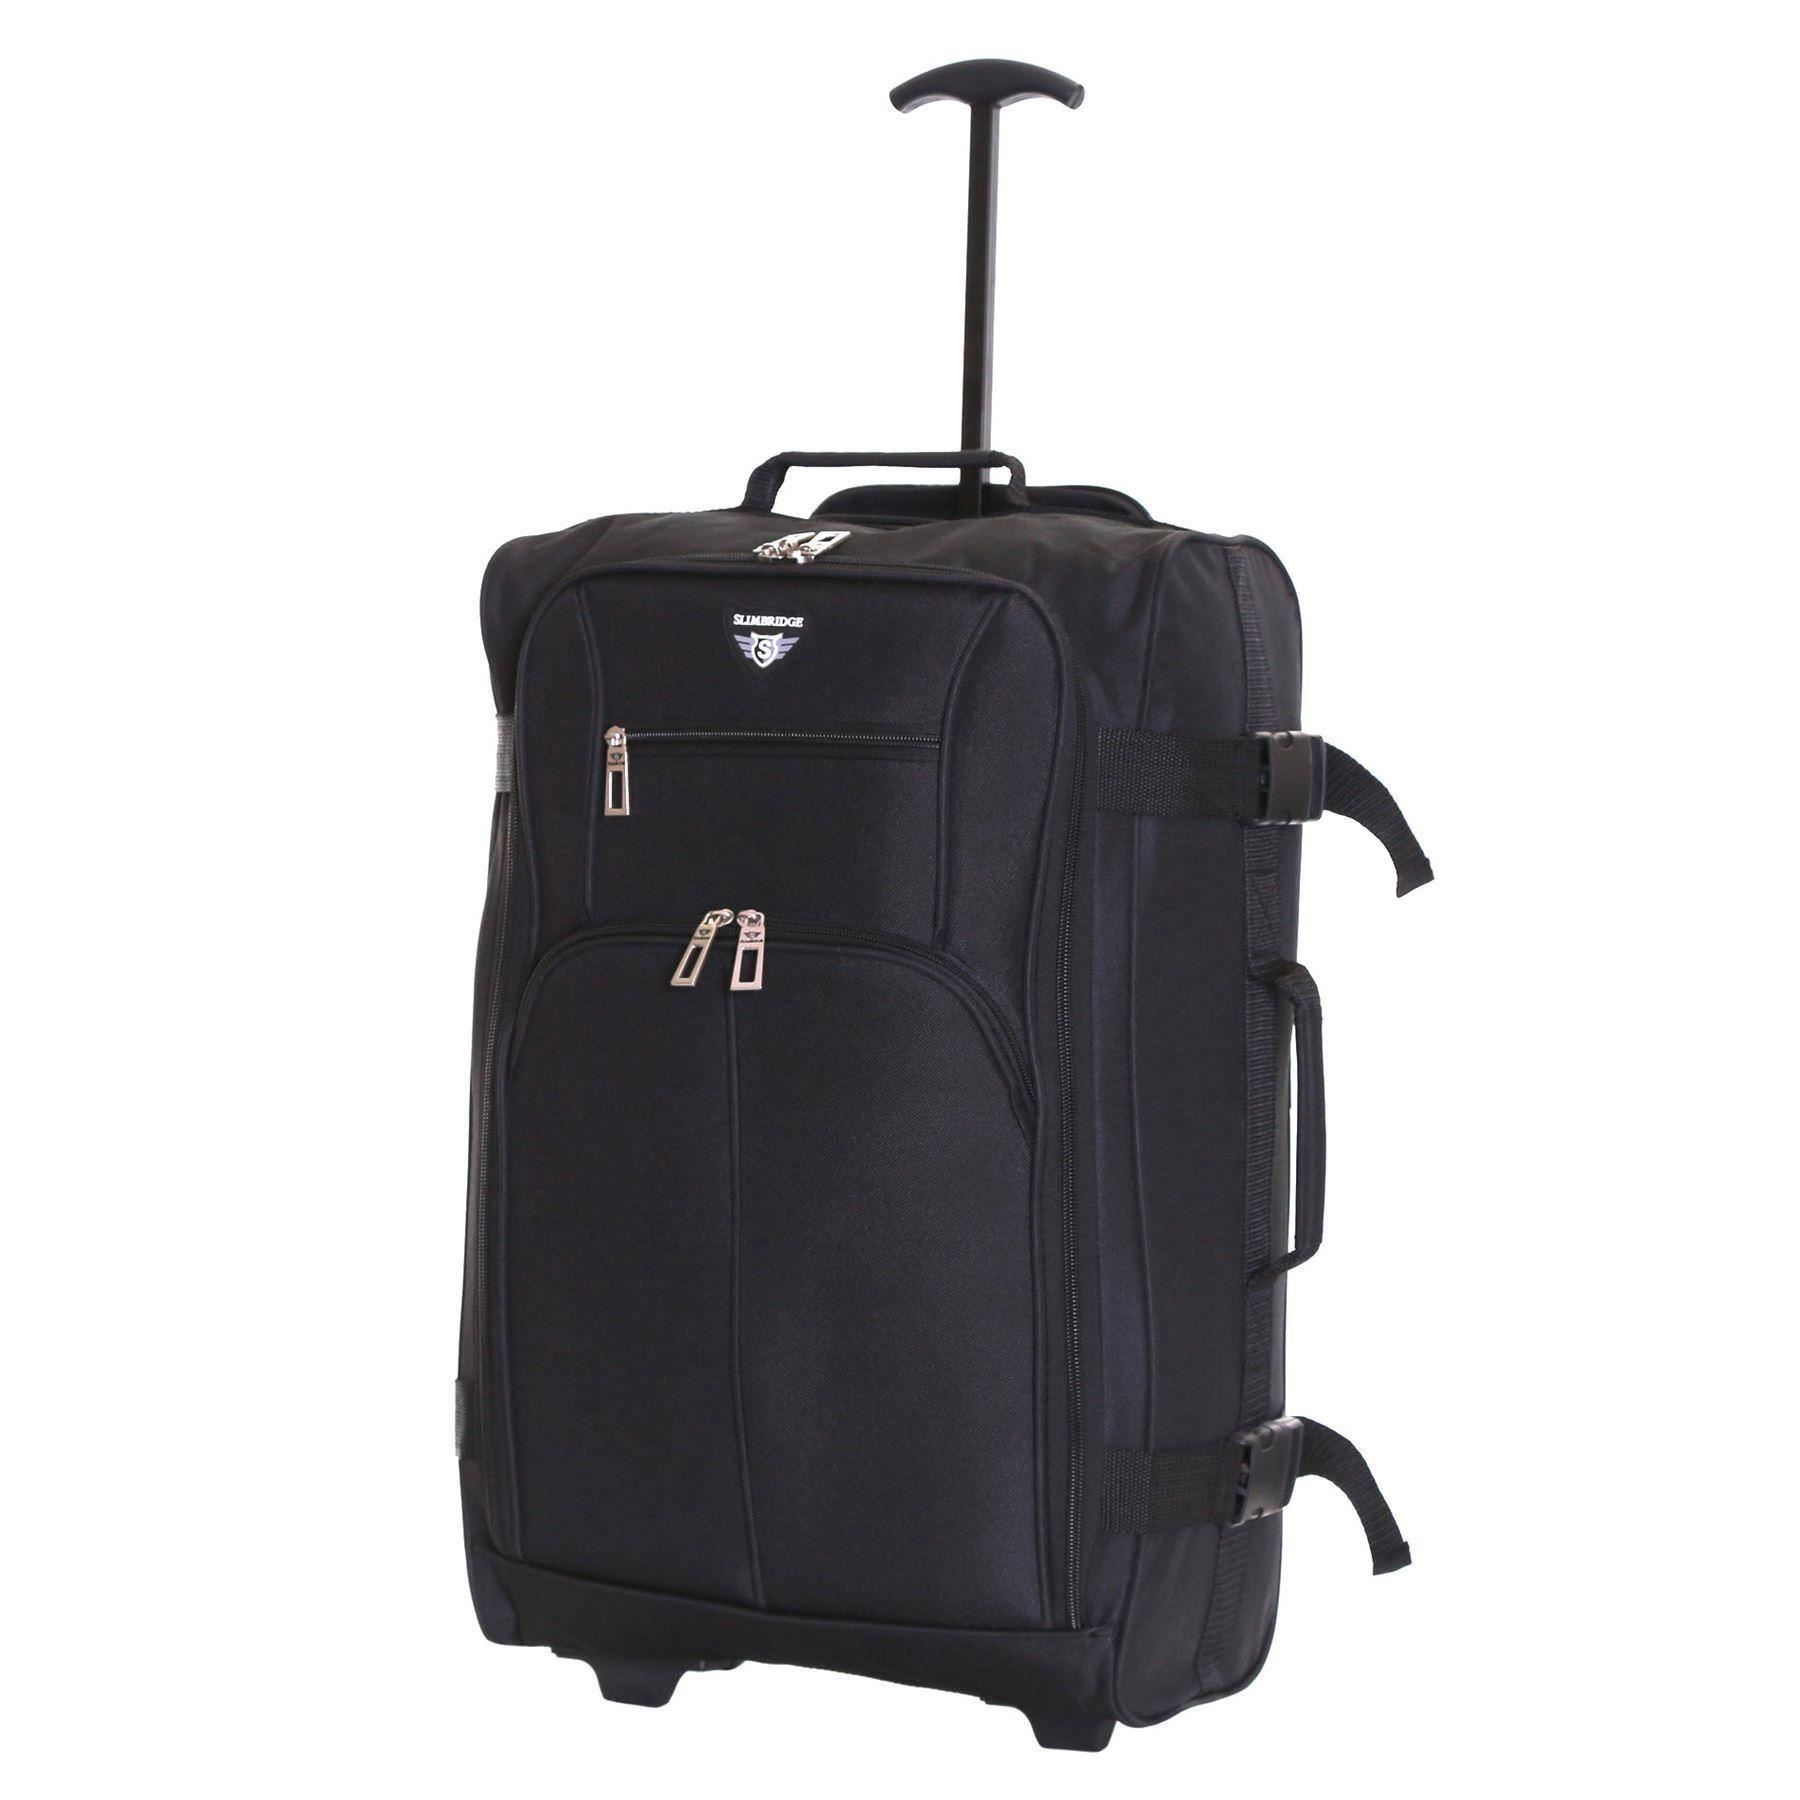 Ryanair-Easyjet-Set-of-2-Cabin-Approved-Hand-Trolley-Suitcases-Luggage-Case-Bags thumbnail 11